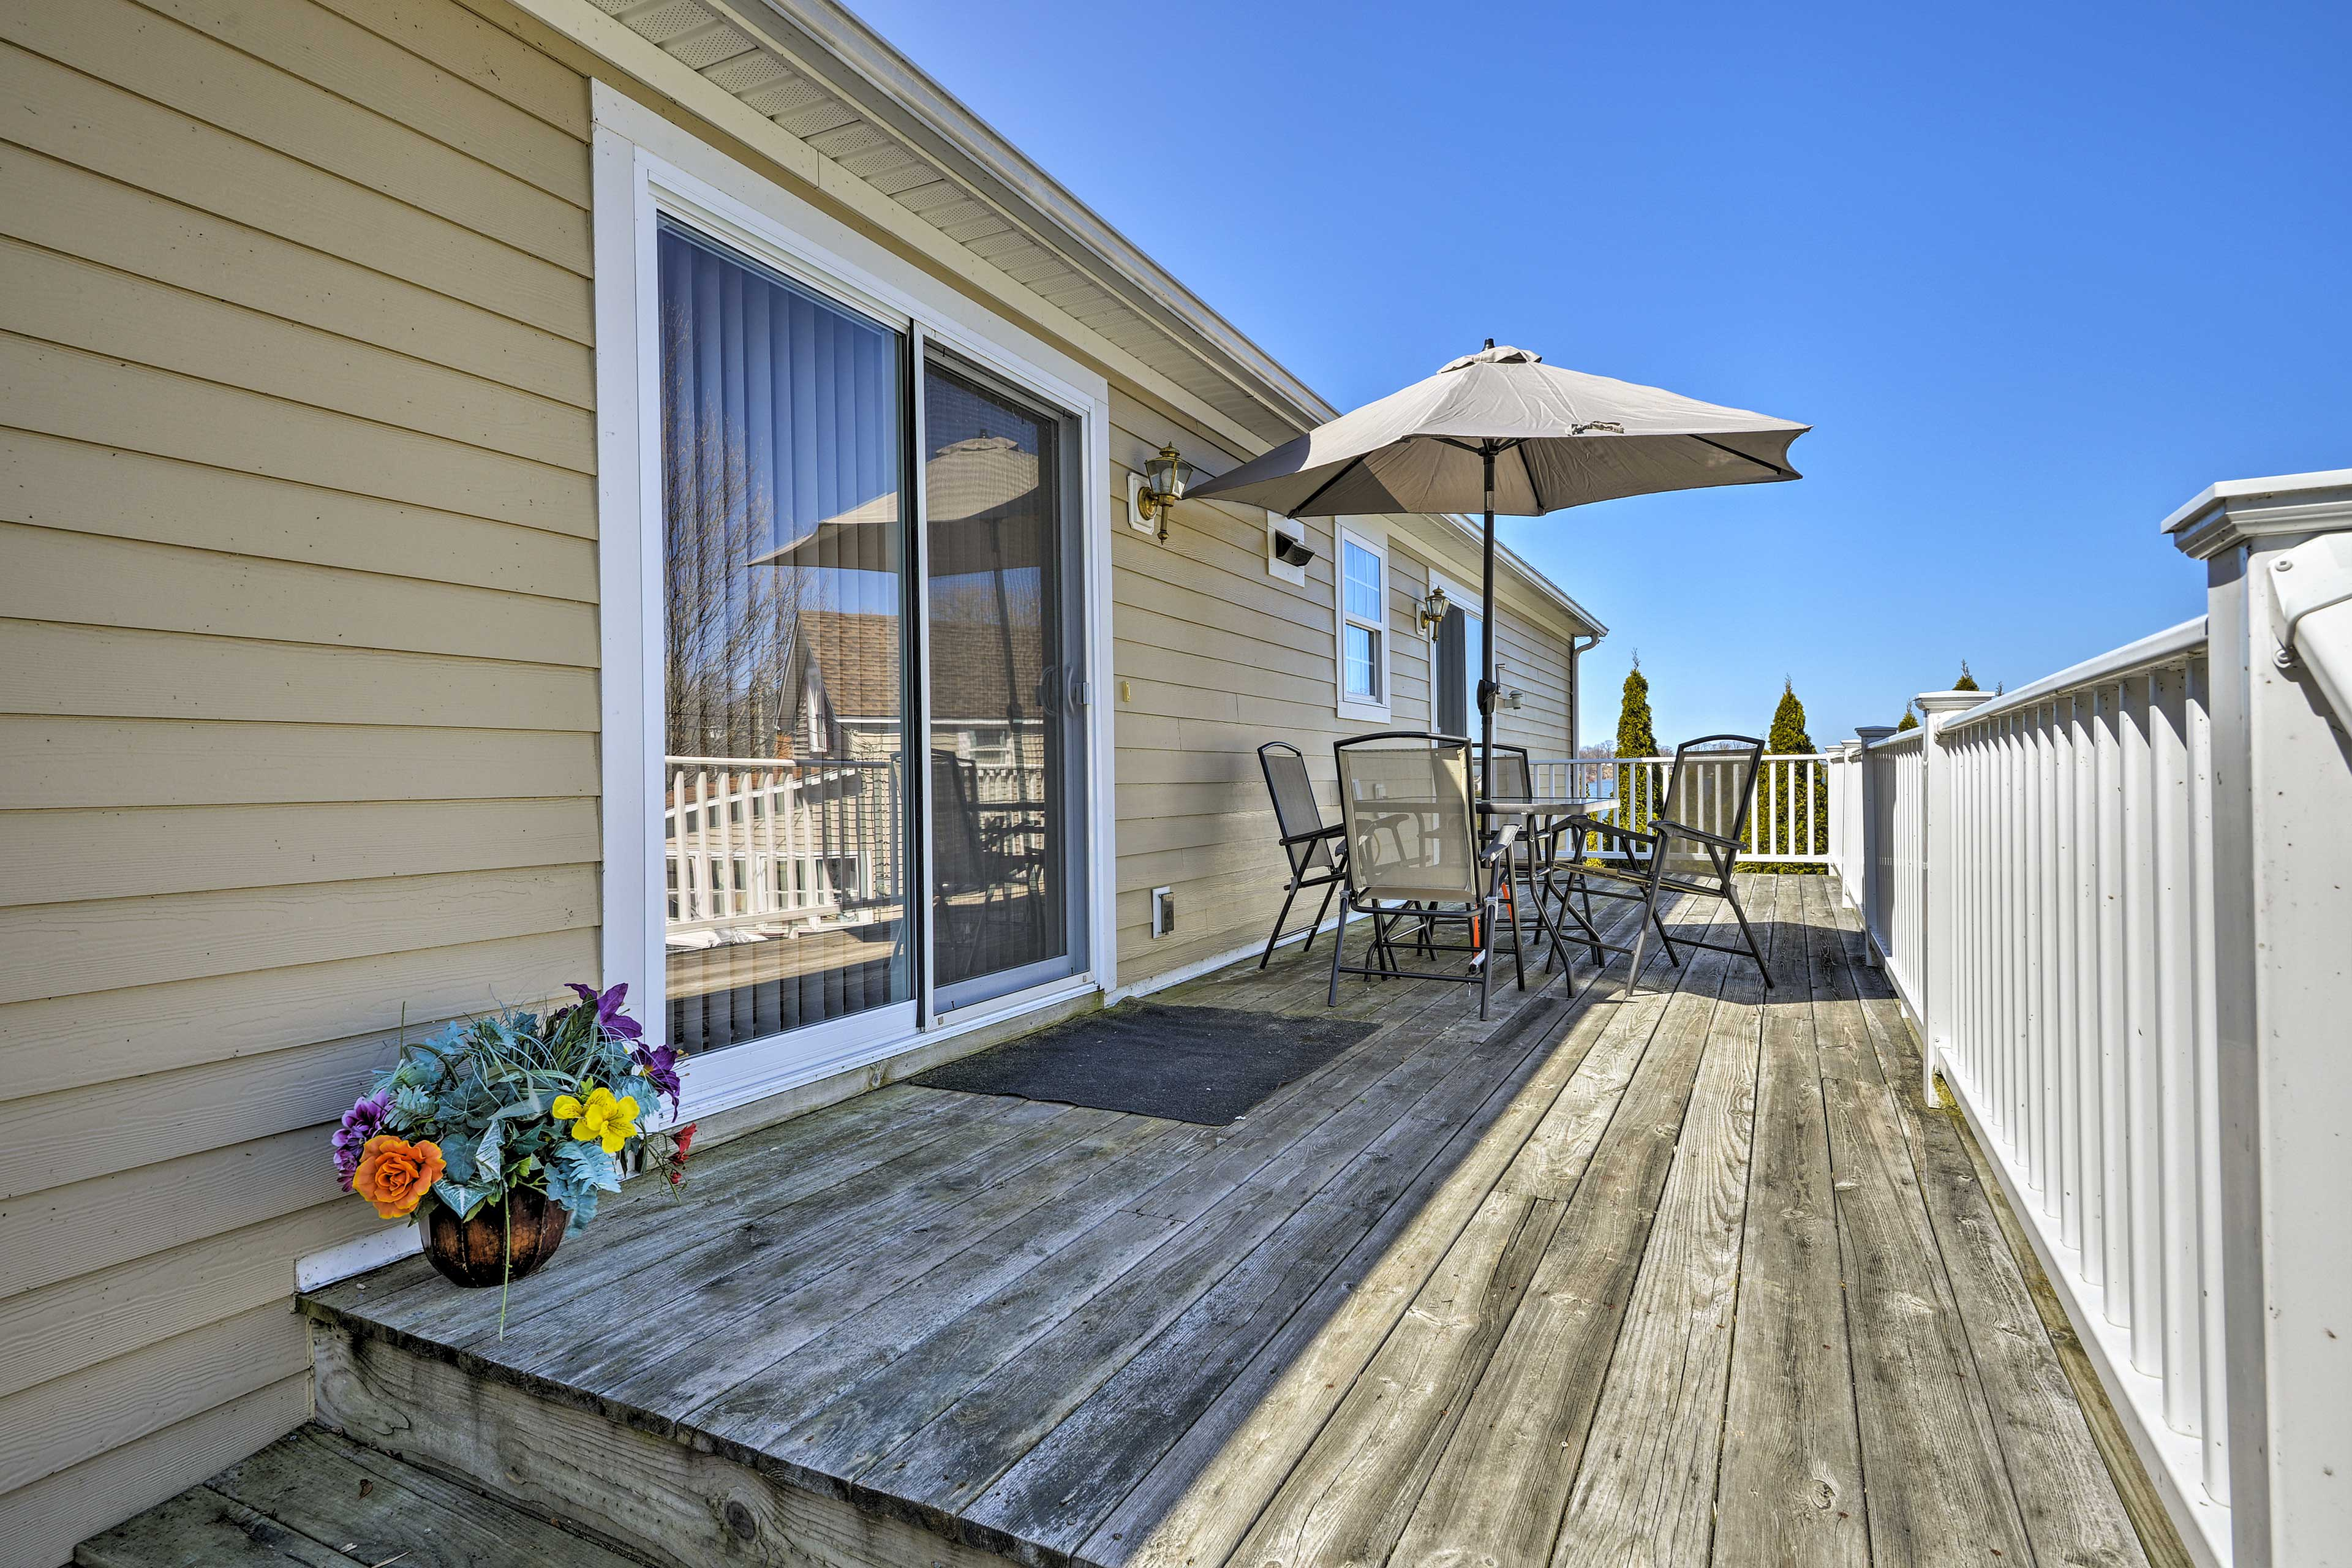 Walk out to the deck and dine al fresco.